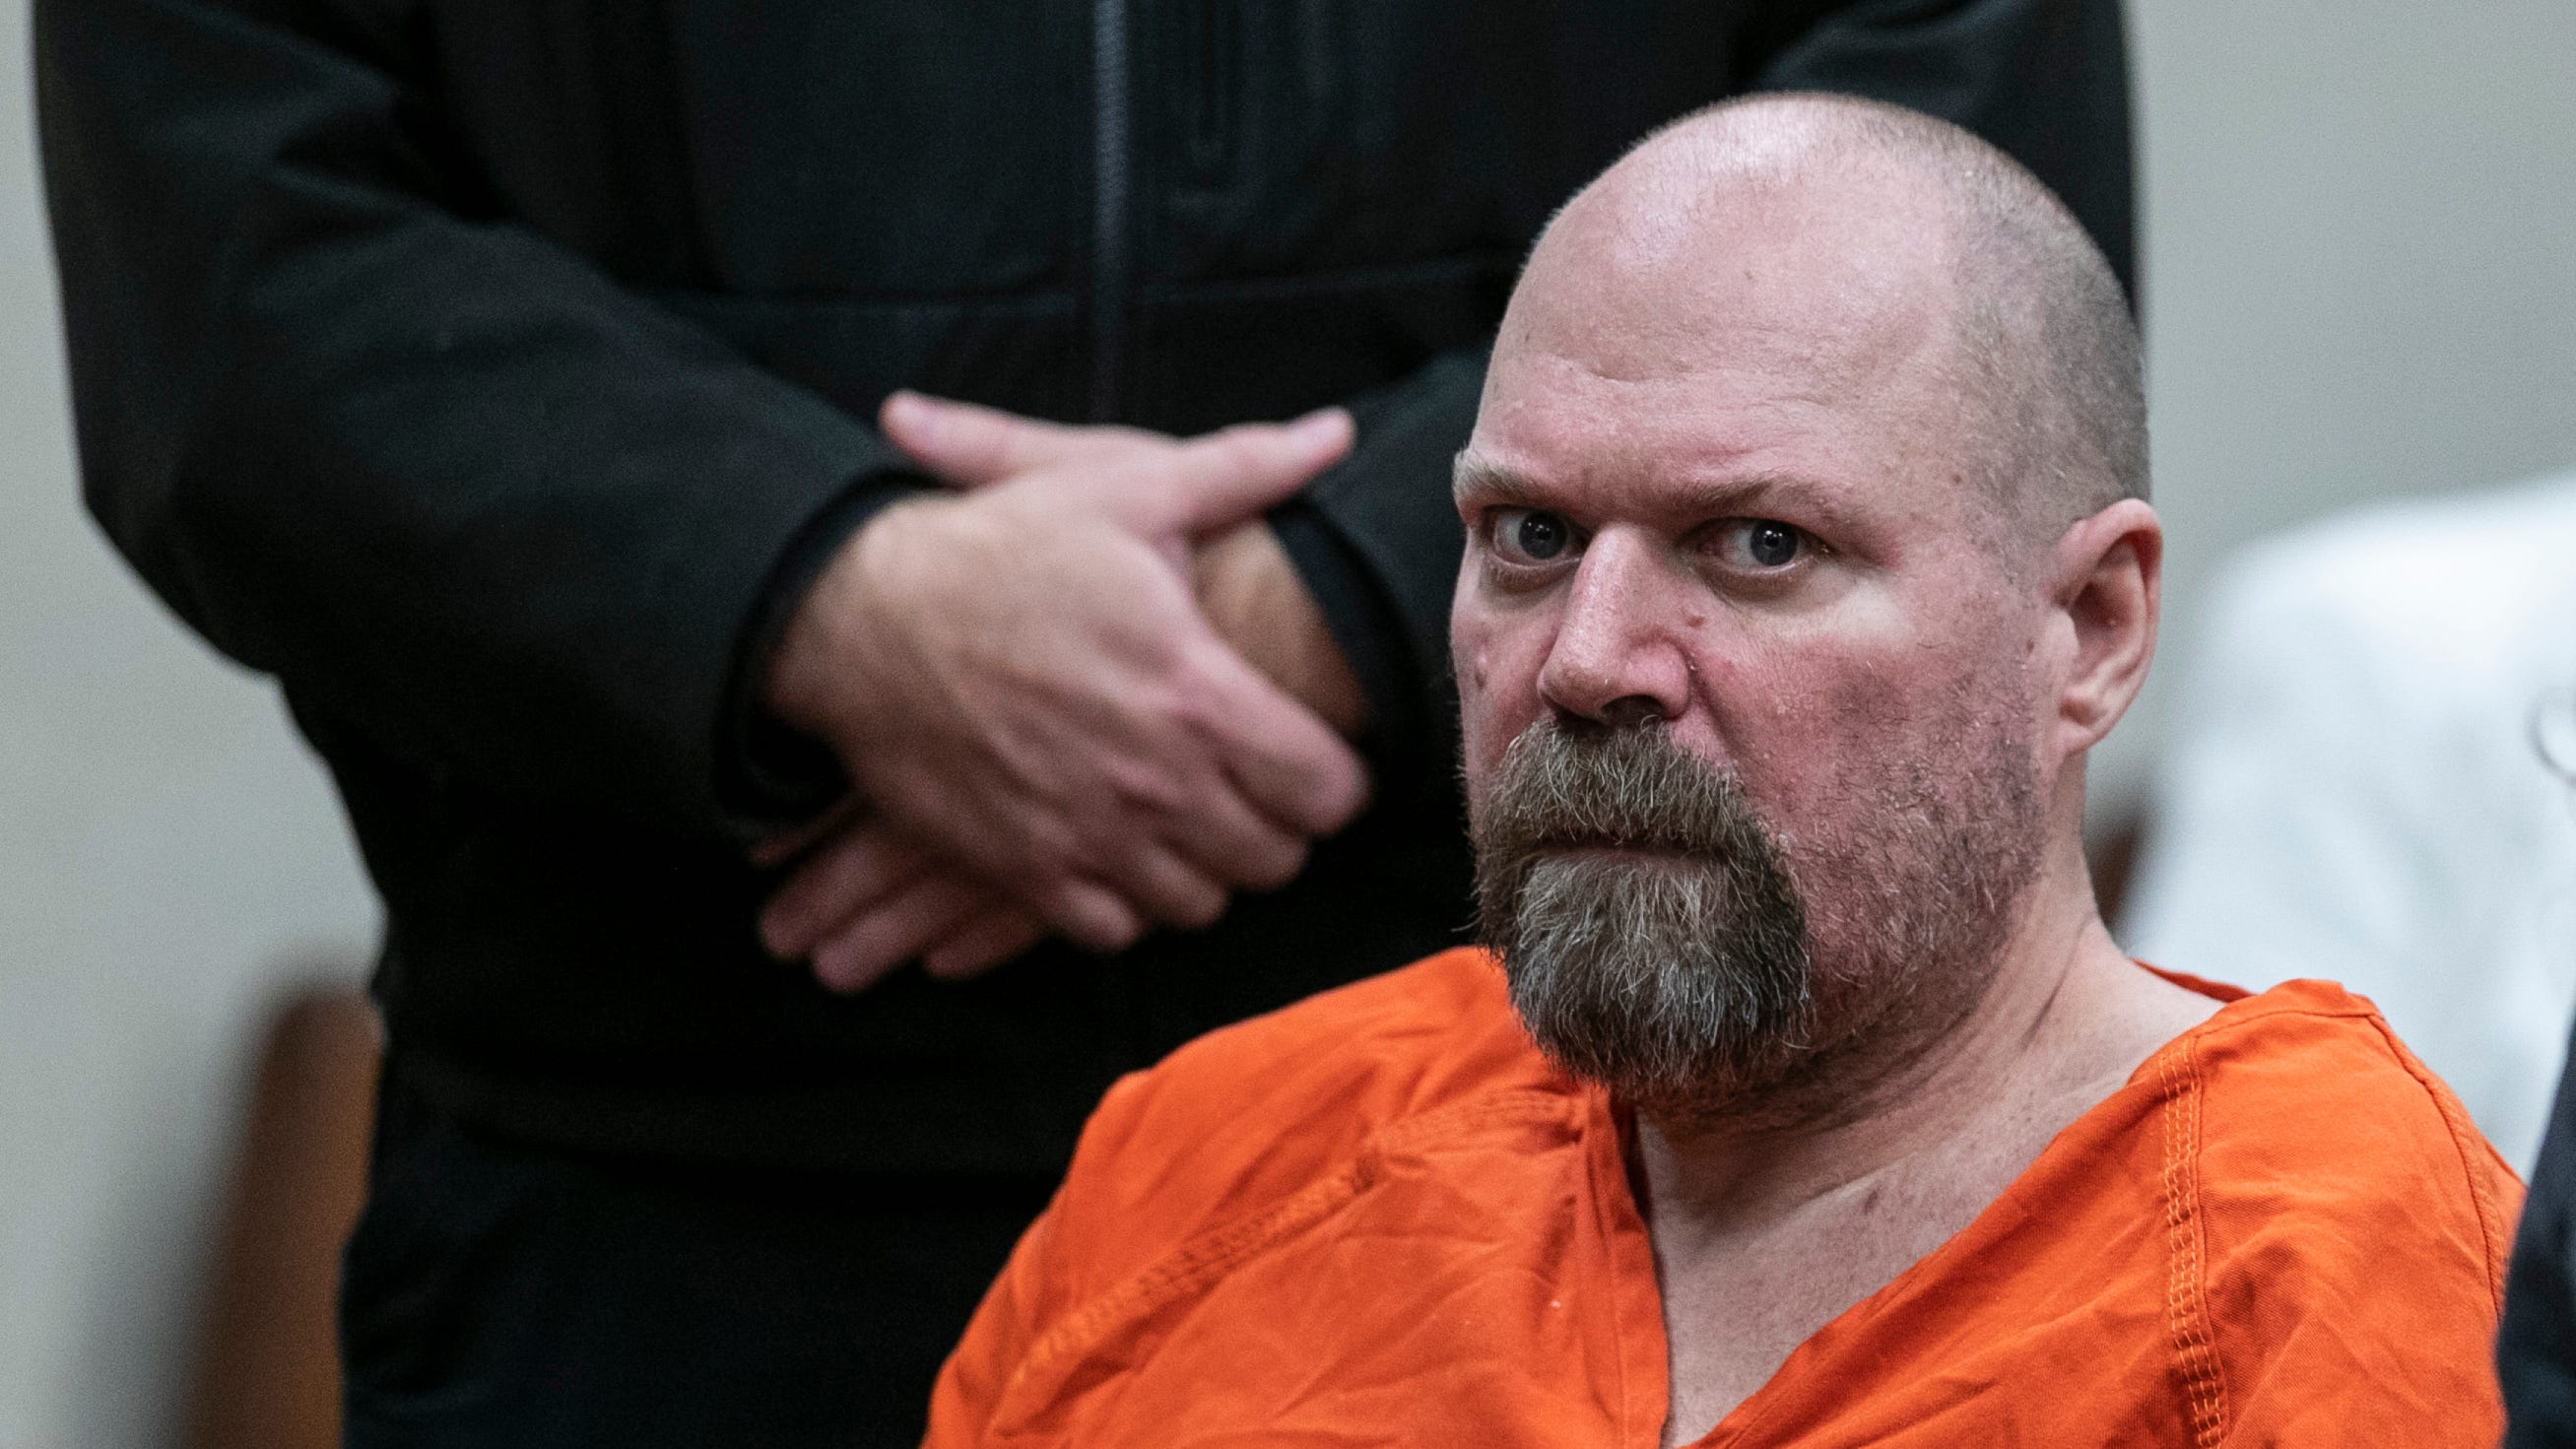 Kentucky Man Sentenced To Life In Prison After Killing 2 Black Kroger Shoppers In 2018 Hate Crime